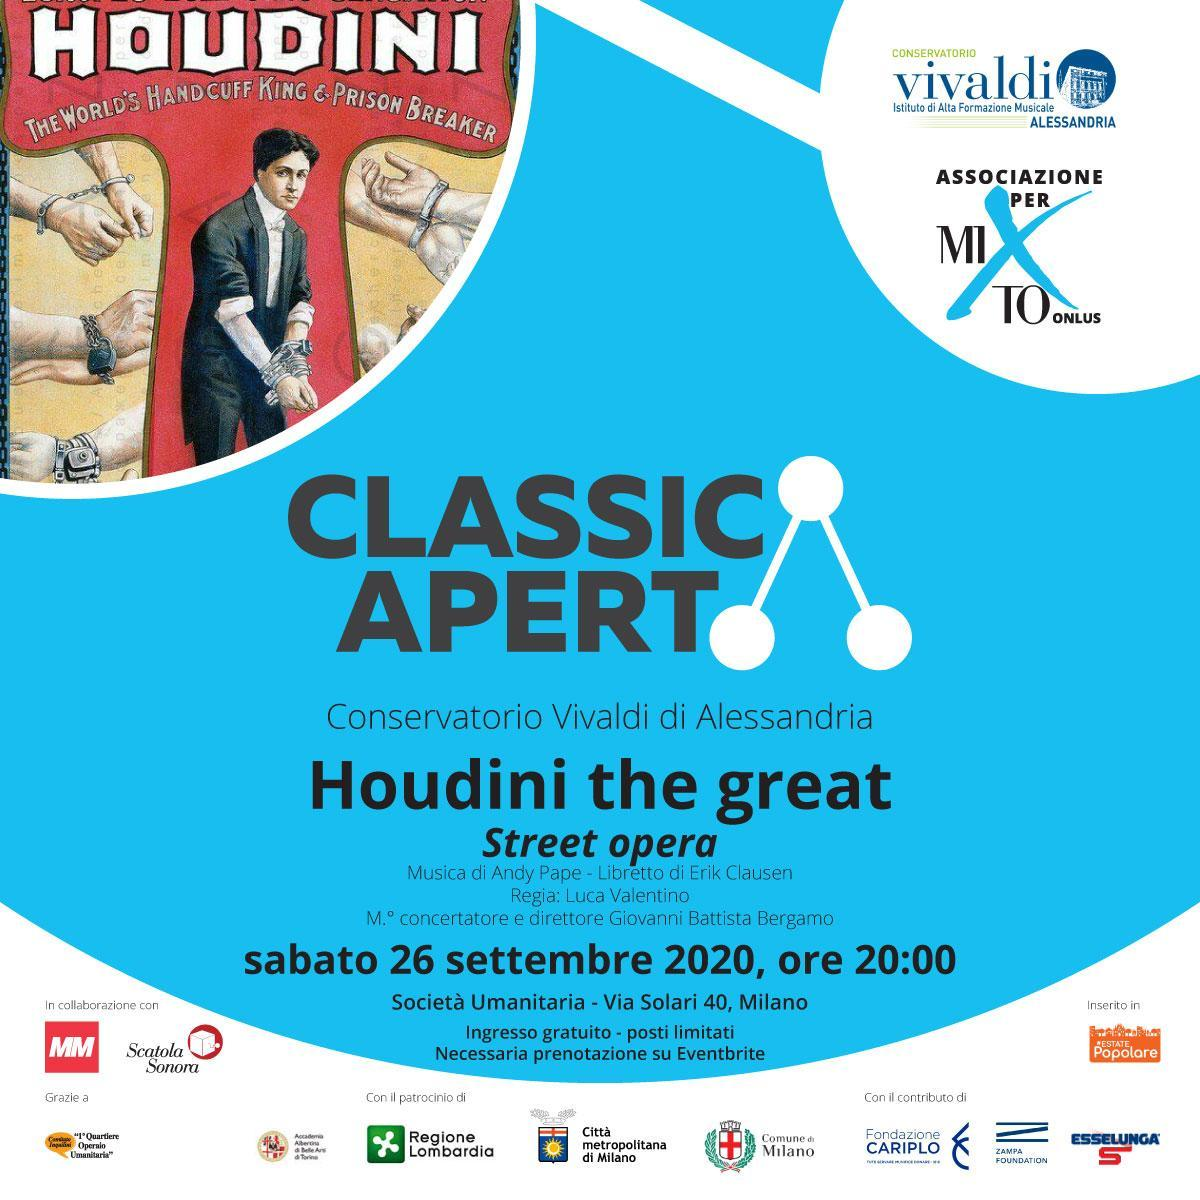 Houdini the great - Street opera